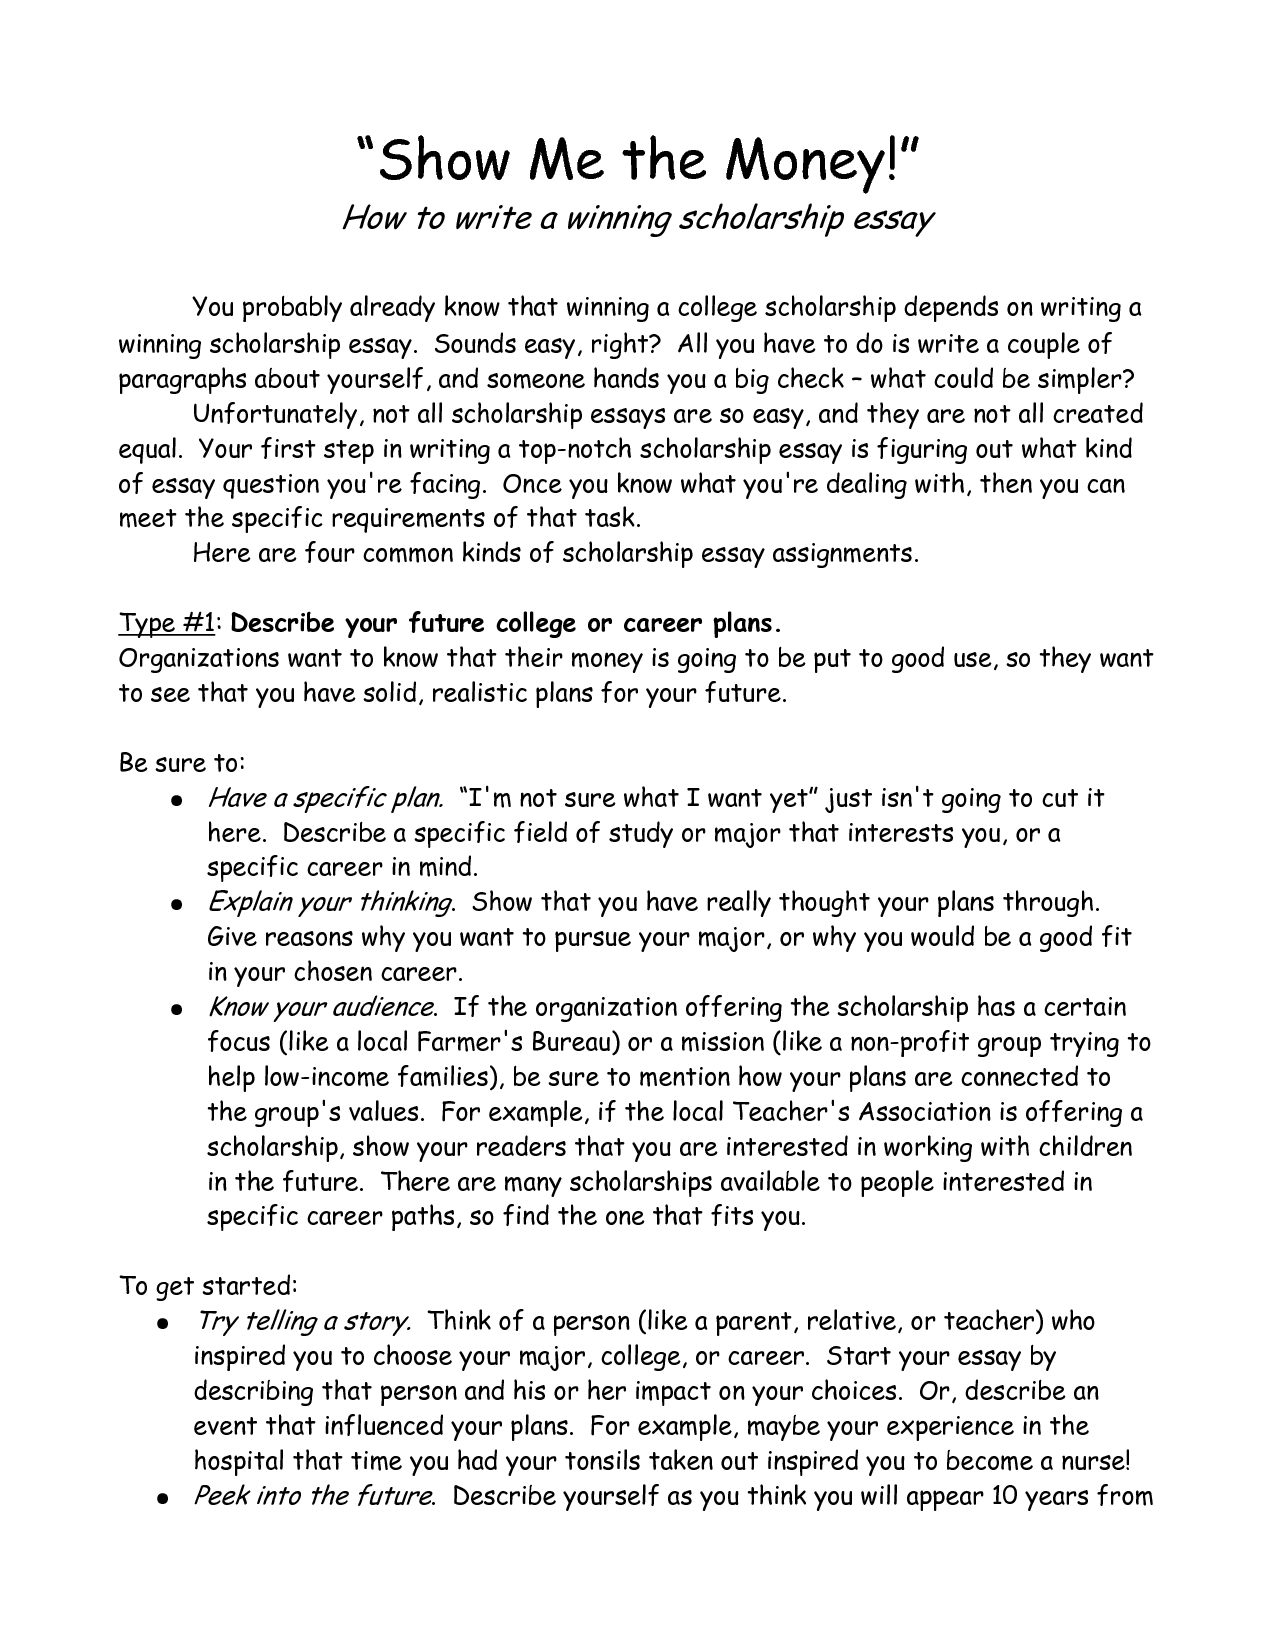 001 Sample Essay For Scholarship Ideas Of Write Enom Warb Also Writing Cover Letter Incredible Mara Personal Pdf Full